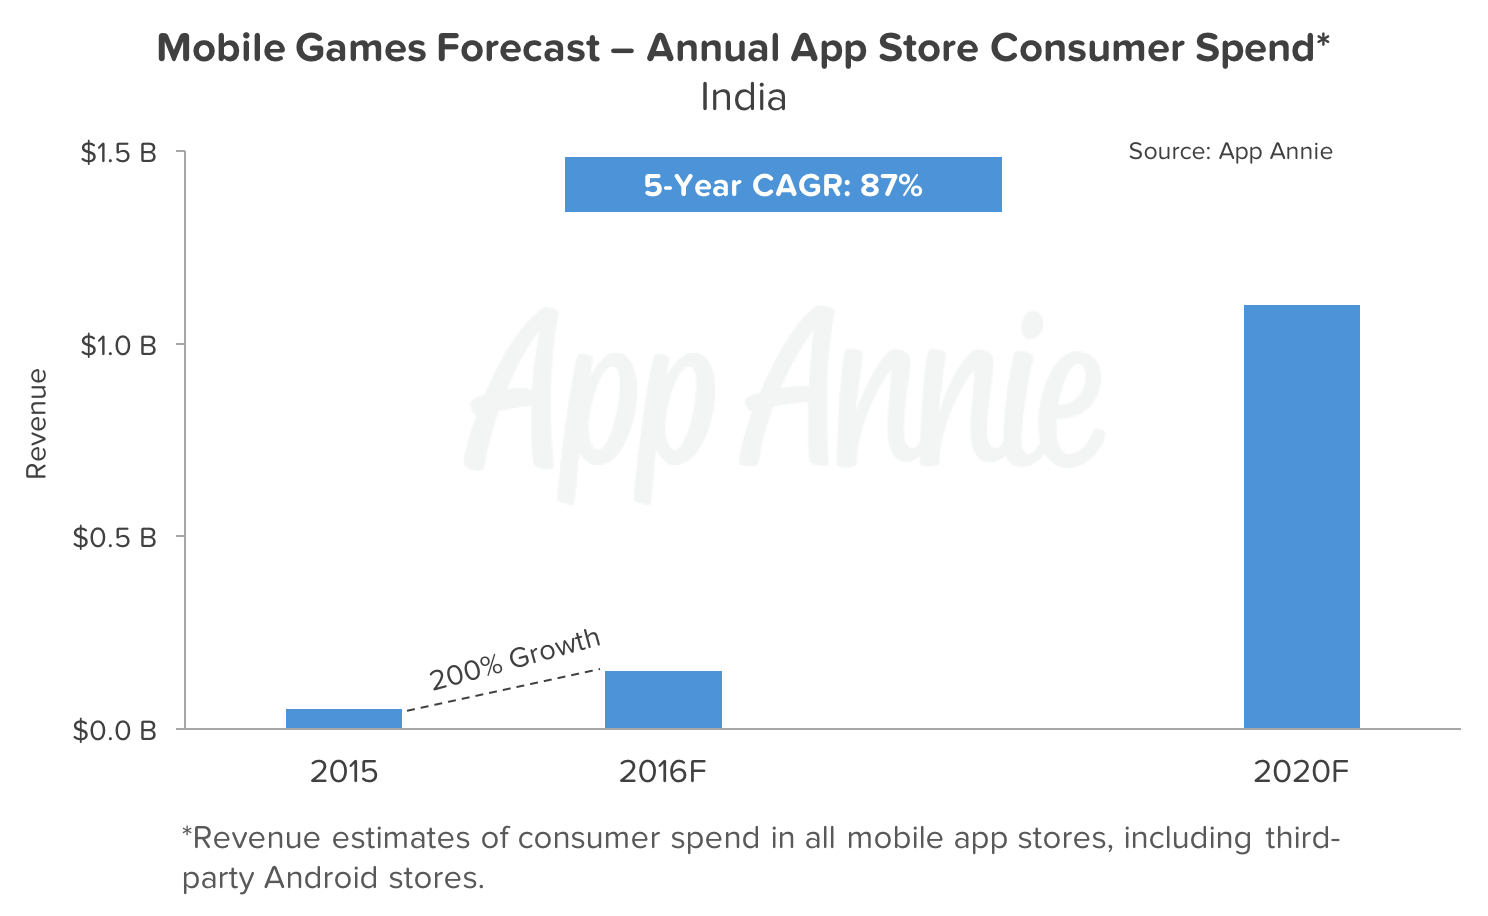 forecast-mobile-games-annual-app-store-consumer-spend-india